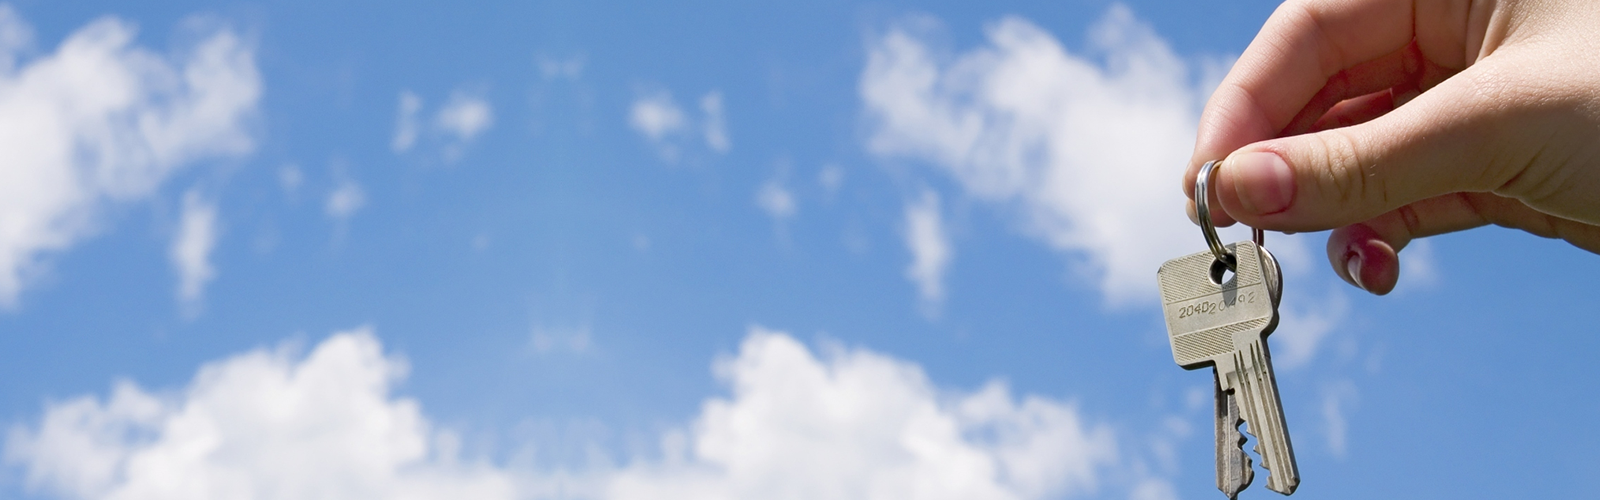 chave-banner-3